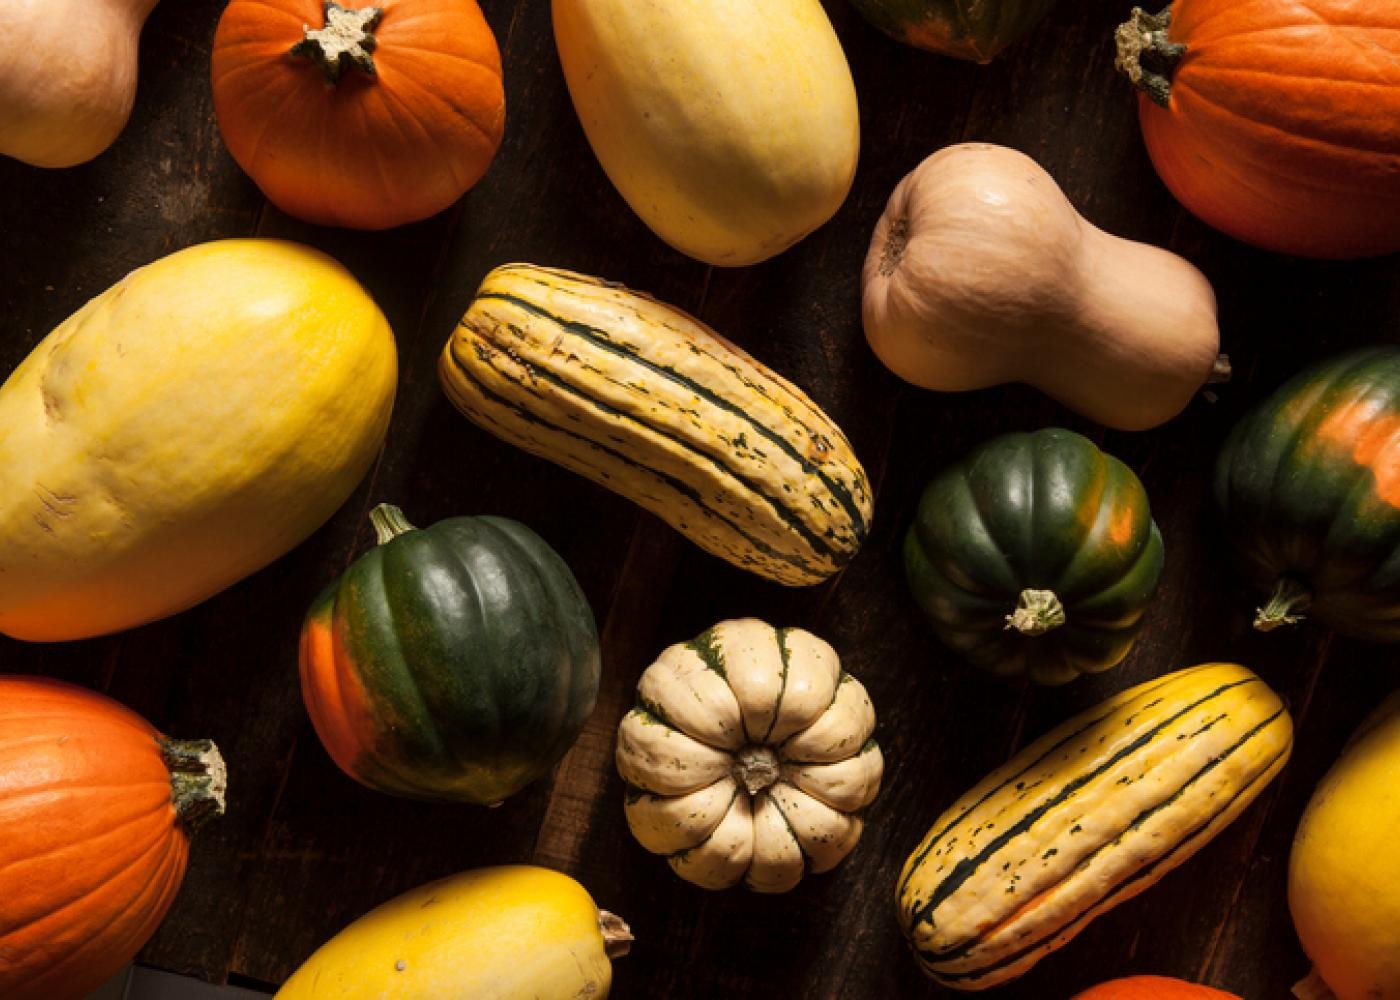 butternut squash, acorn squash, and other winter squash